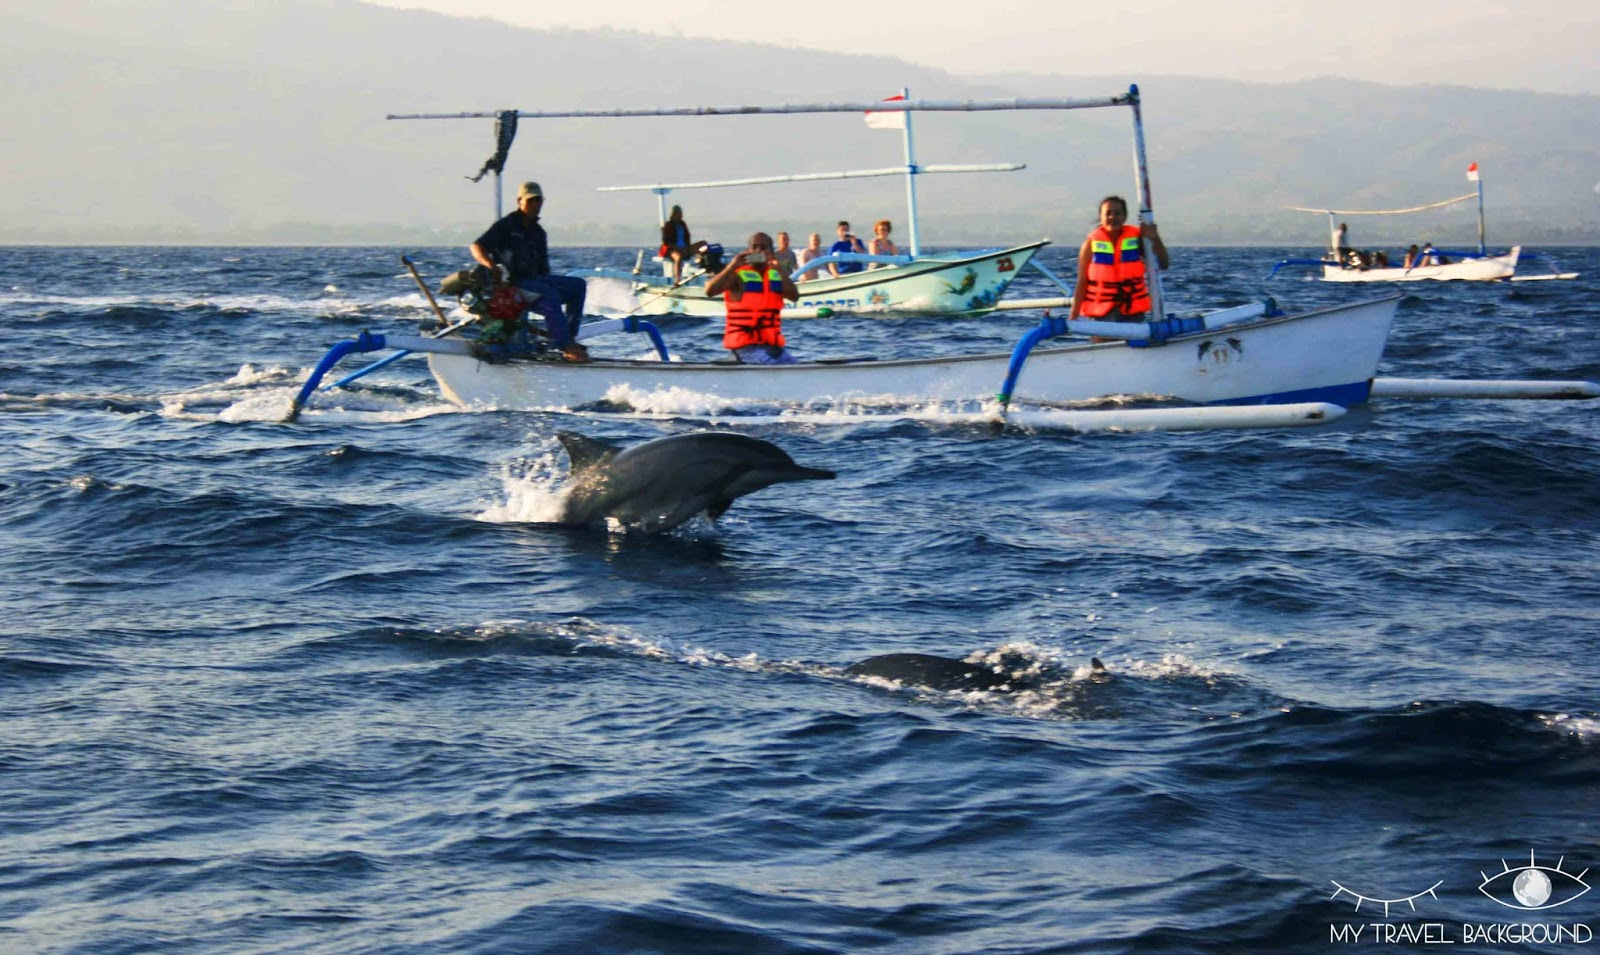 My Travel Background : que visiter dans le Nord de Bali? Dauphins à Lovina